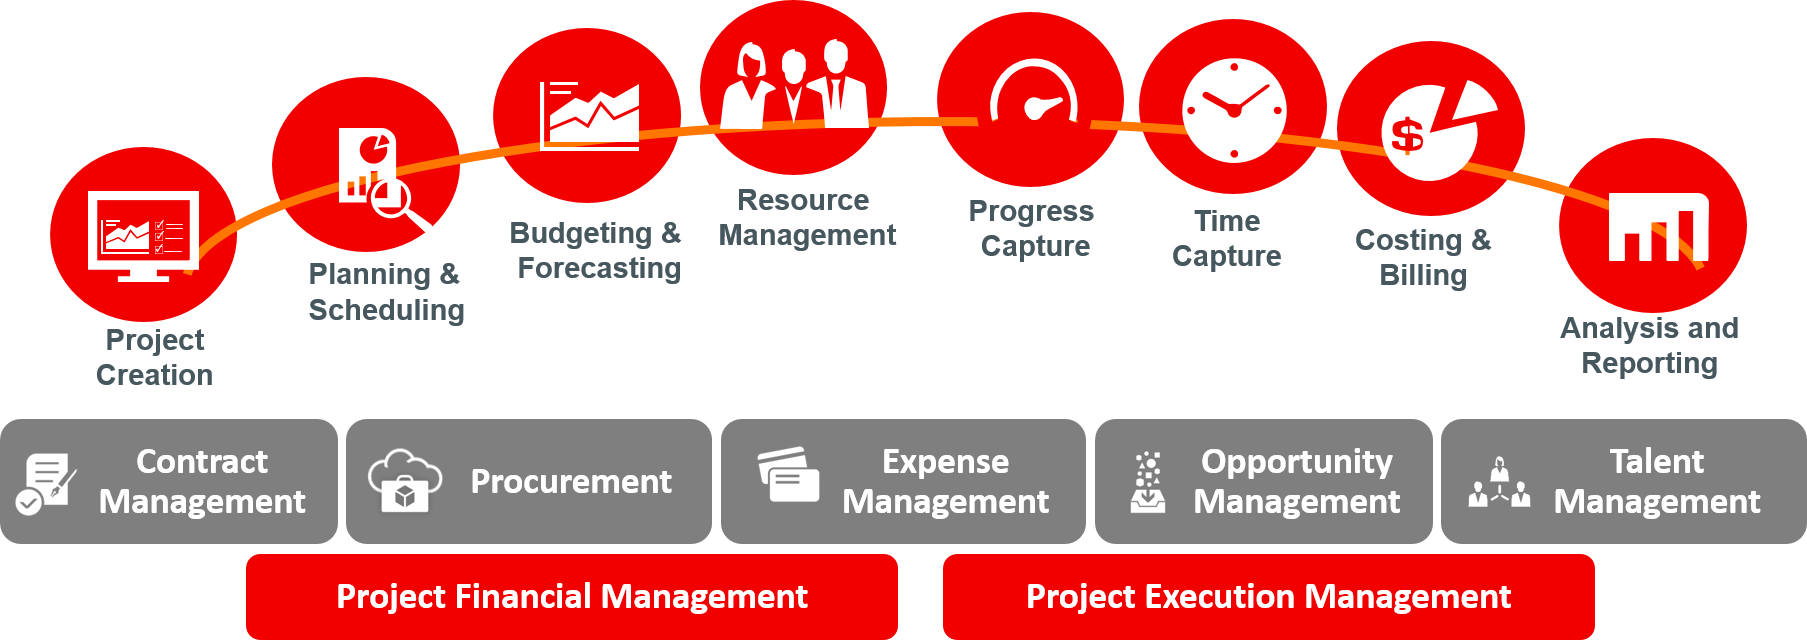 Offerings Amp Solutions For Oracle Cloud Erp Amp Digital